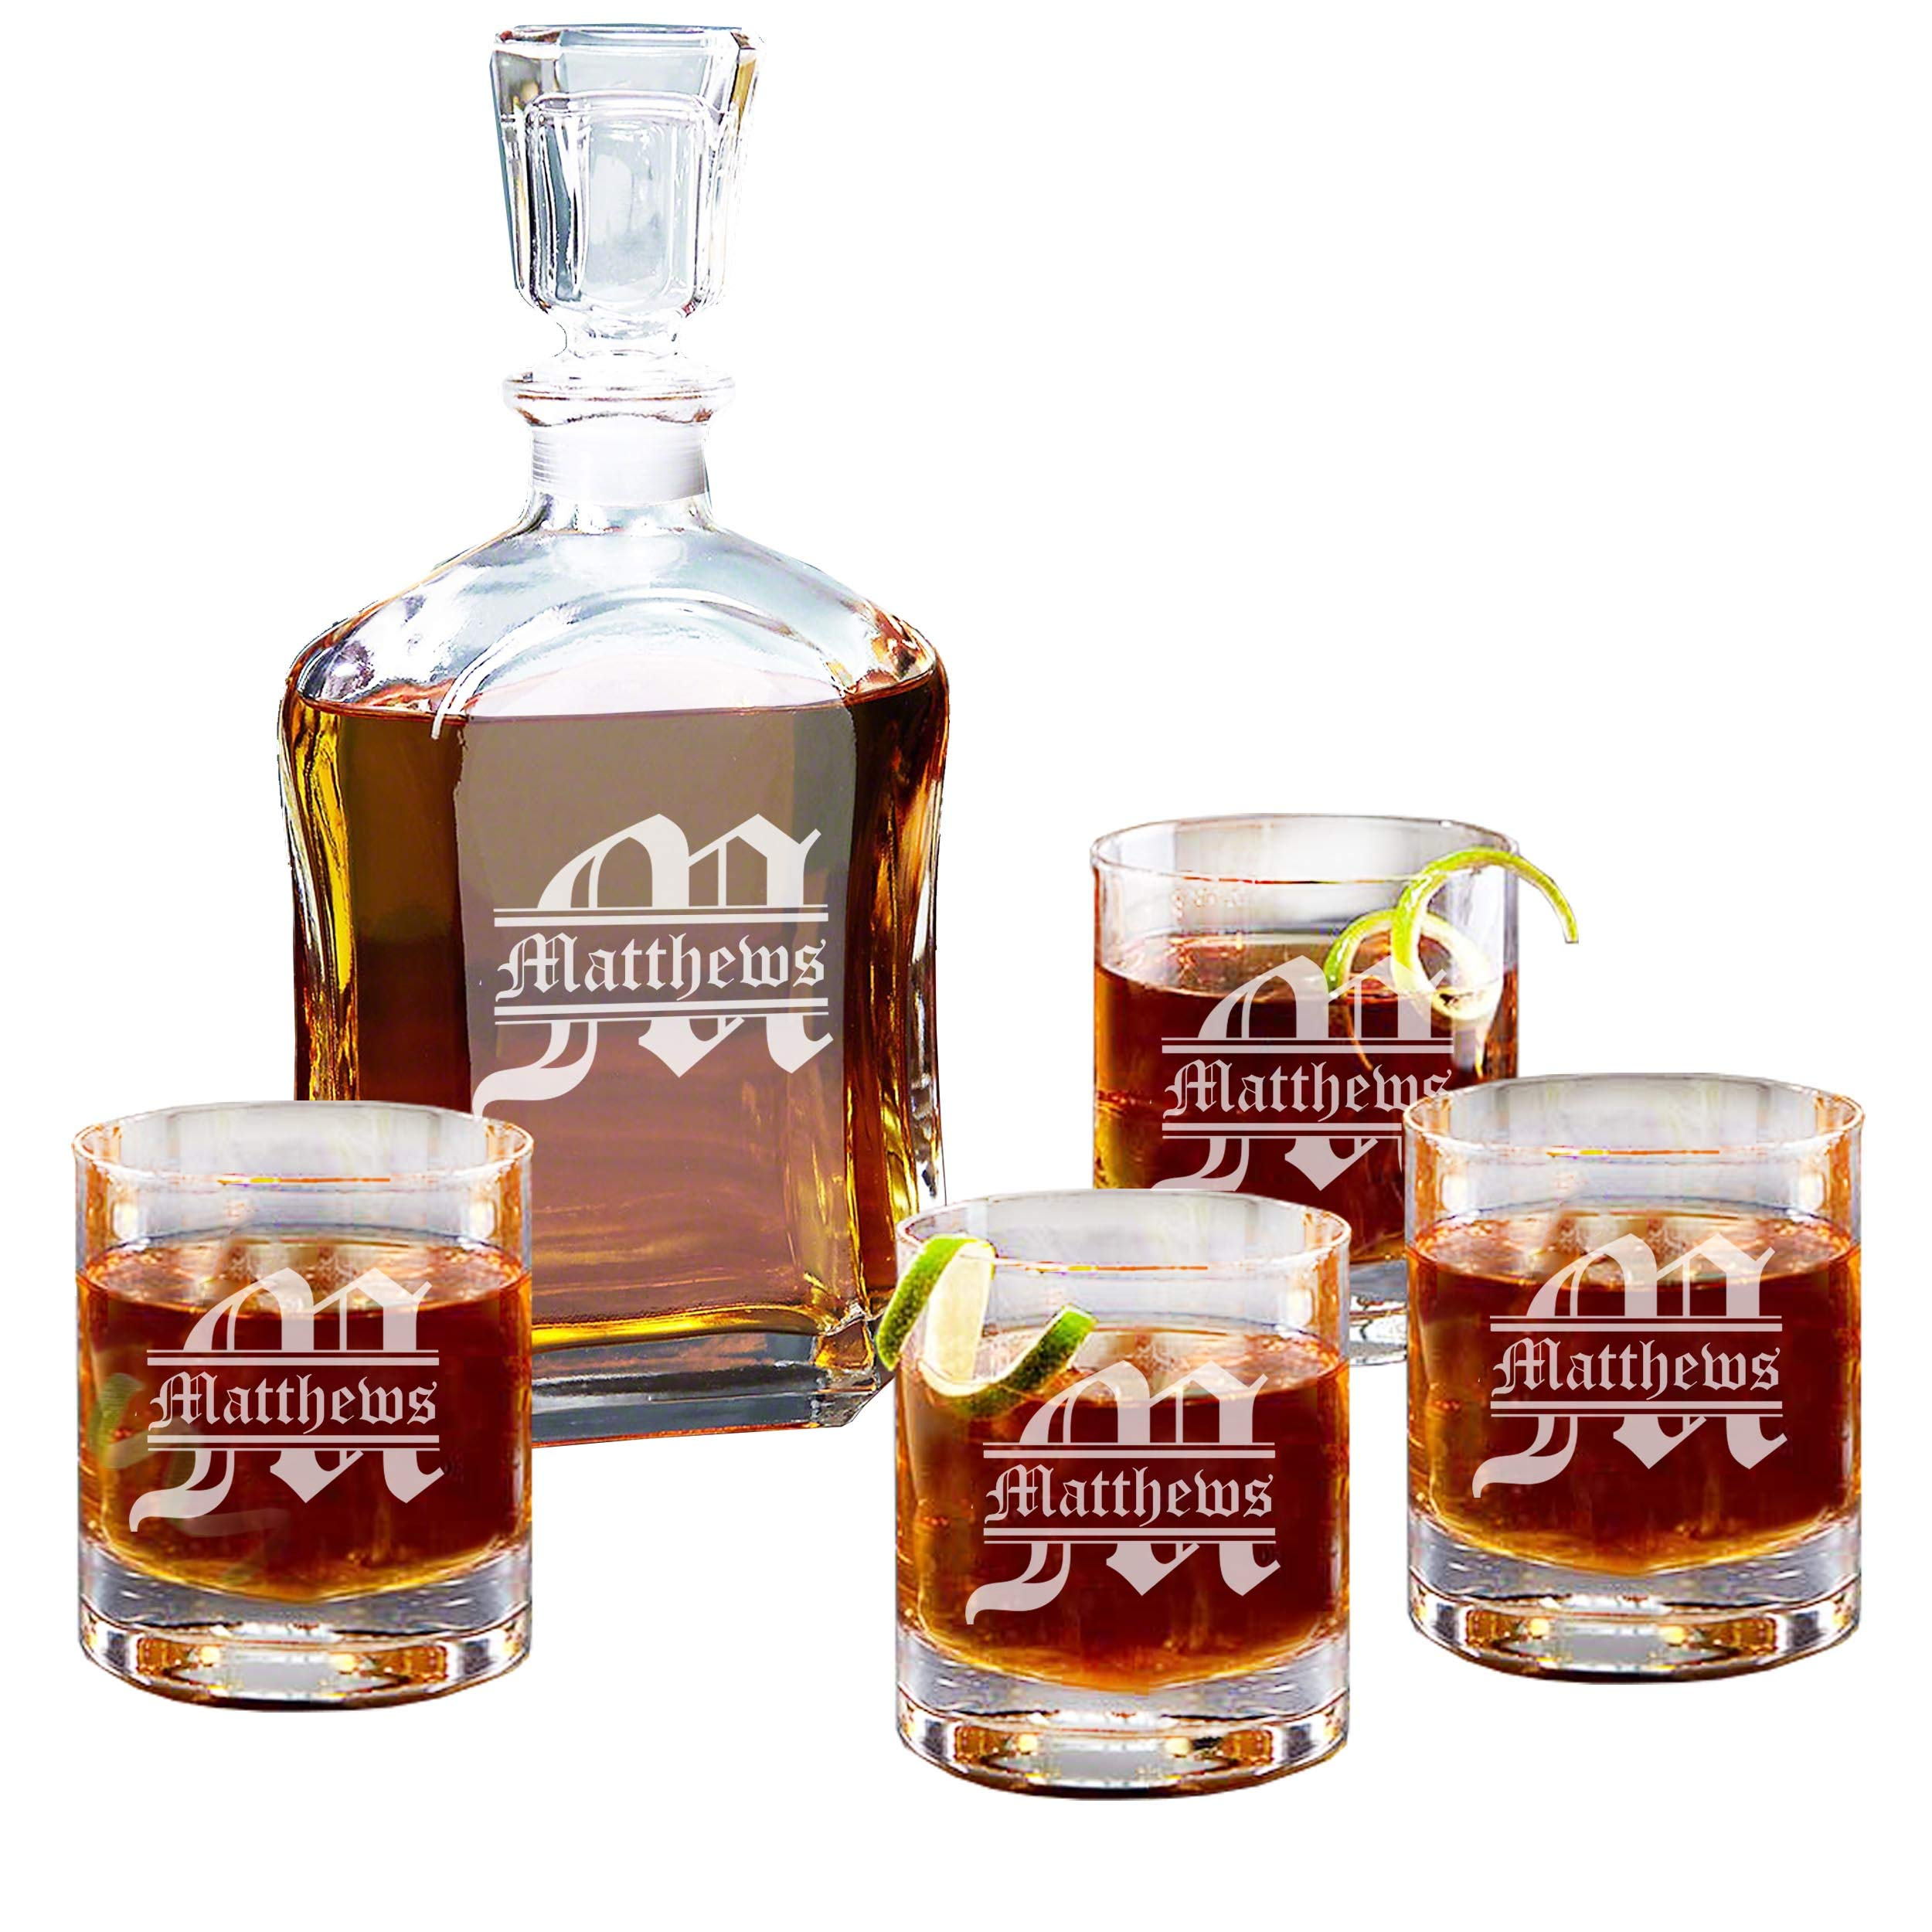 Personalized 5 pc Whiskey Decanter Set - Decanter and 4 Glasses Gift Set - Custom Engraved with Name and Initial